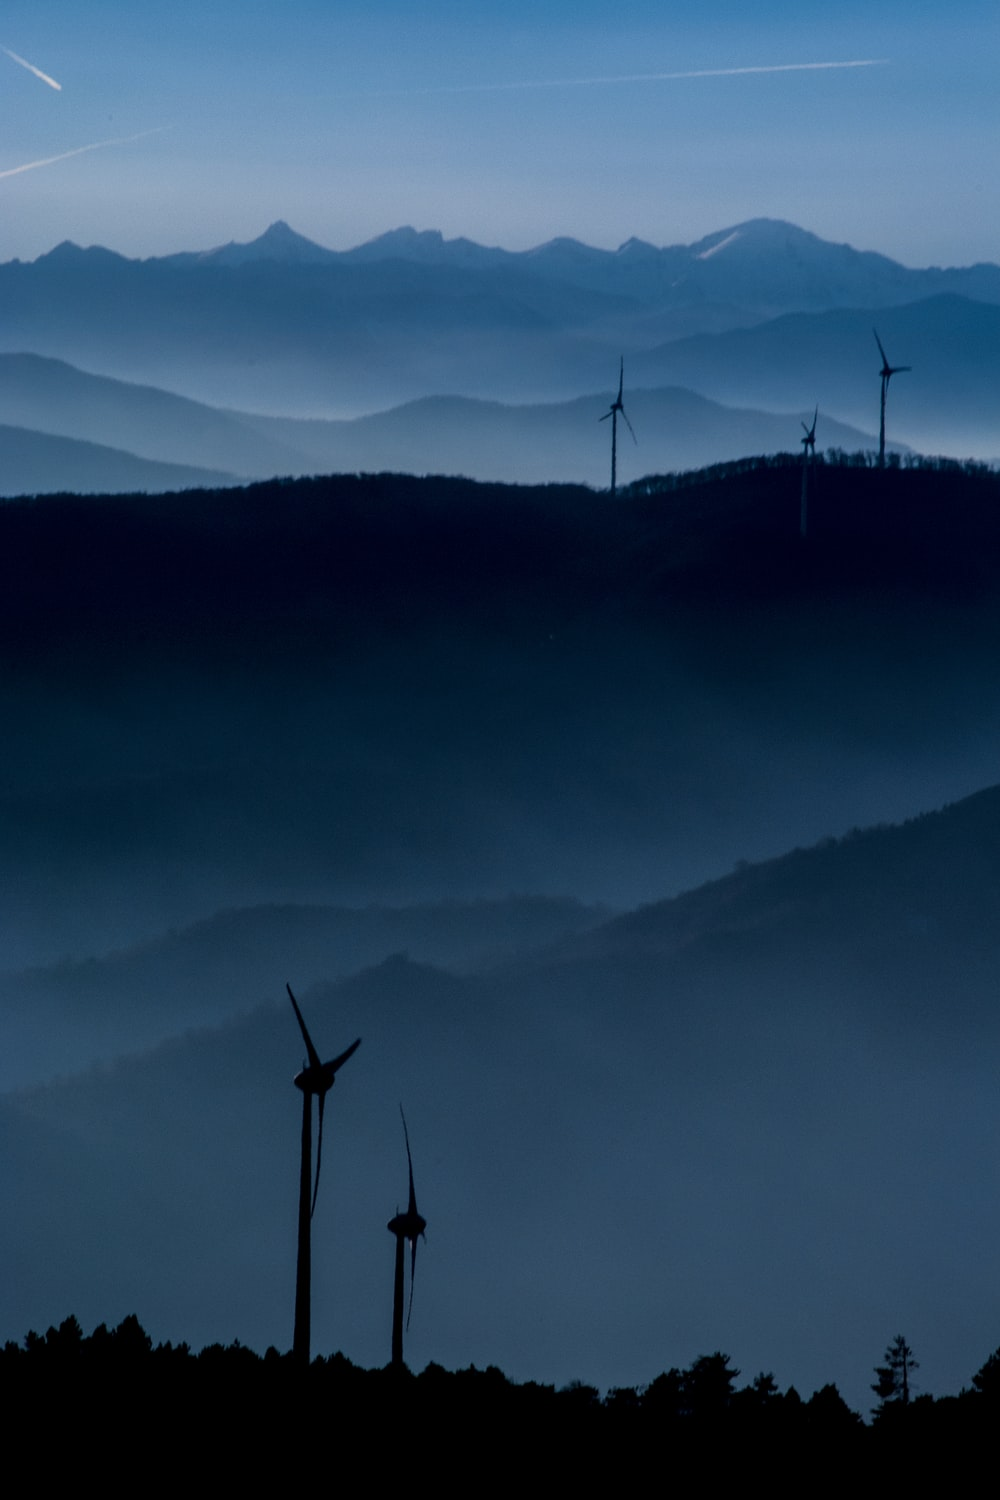 wind turbine overlooking mountain ridge